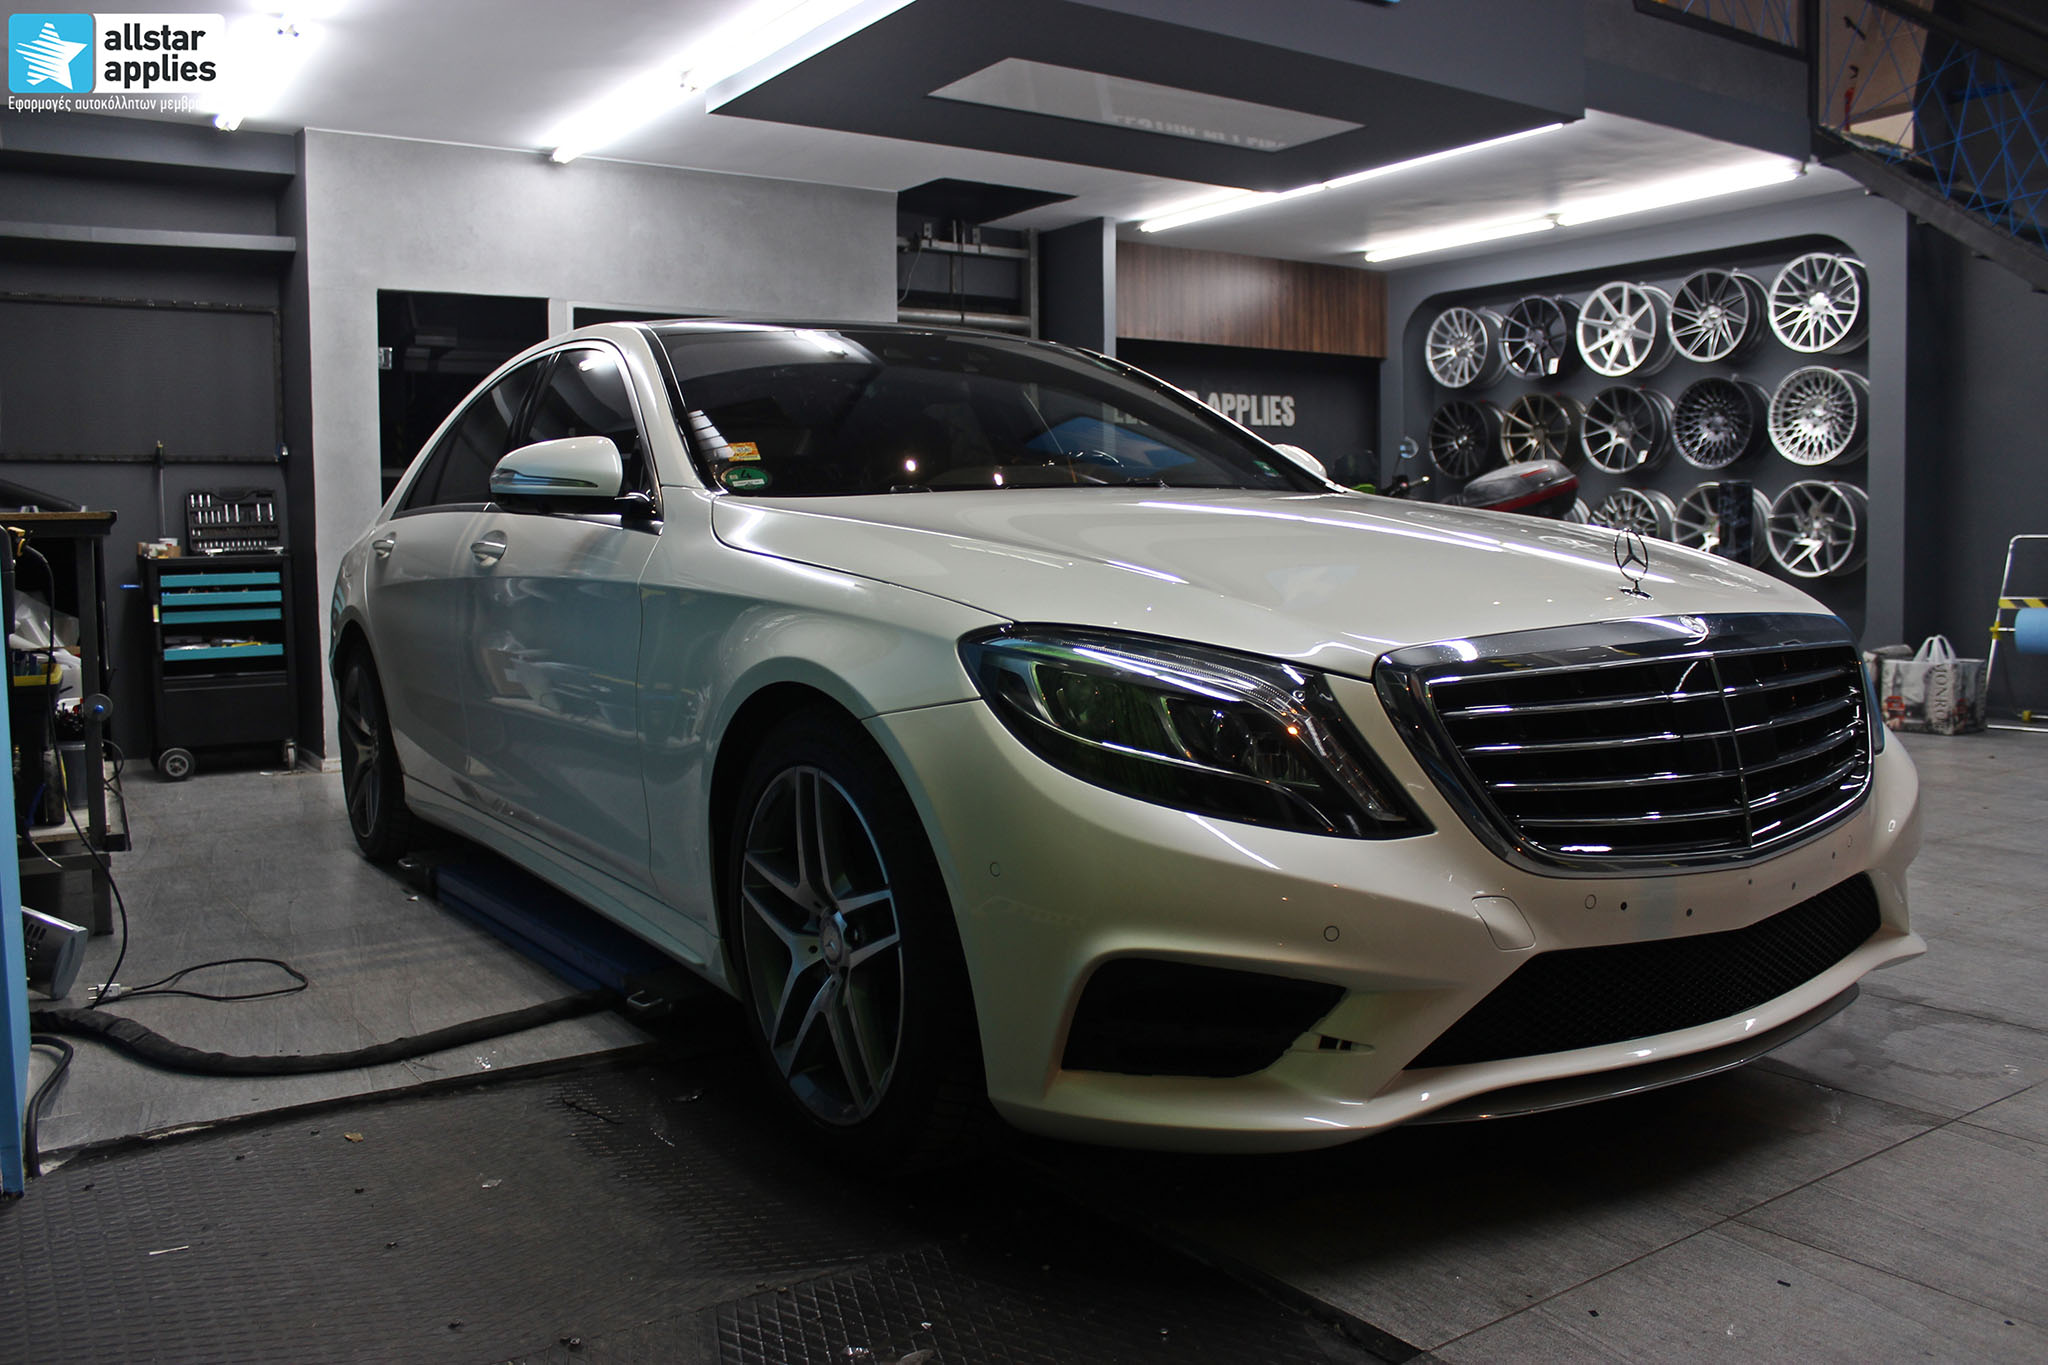 Mercedes S500 AMG - Paint Protection Film (2)